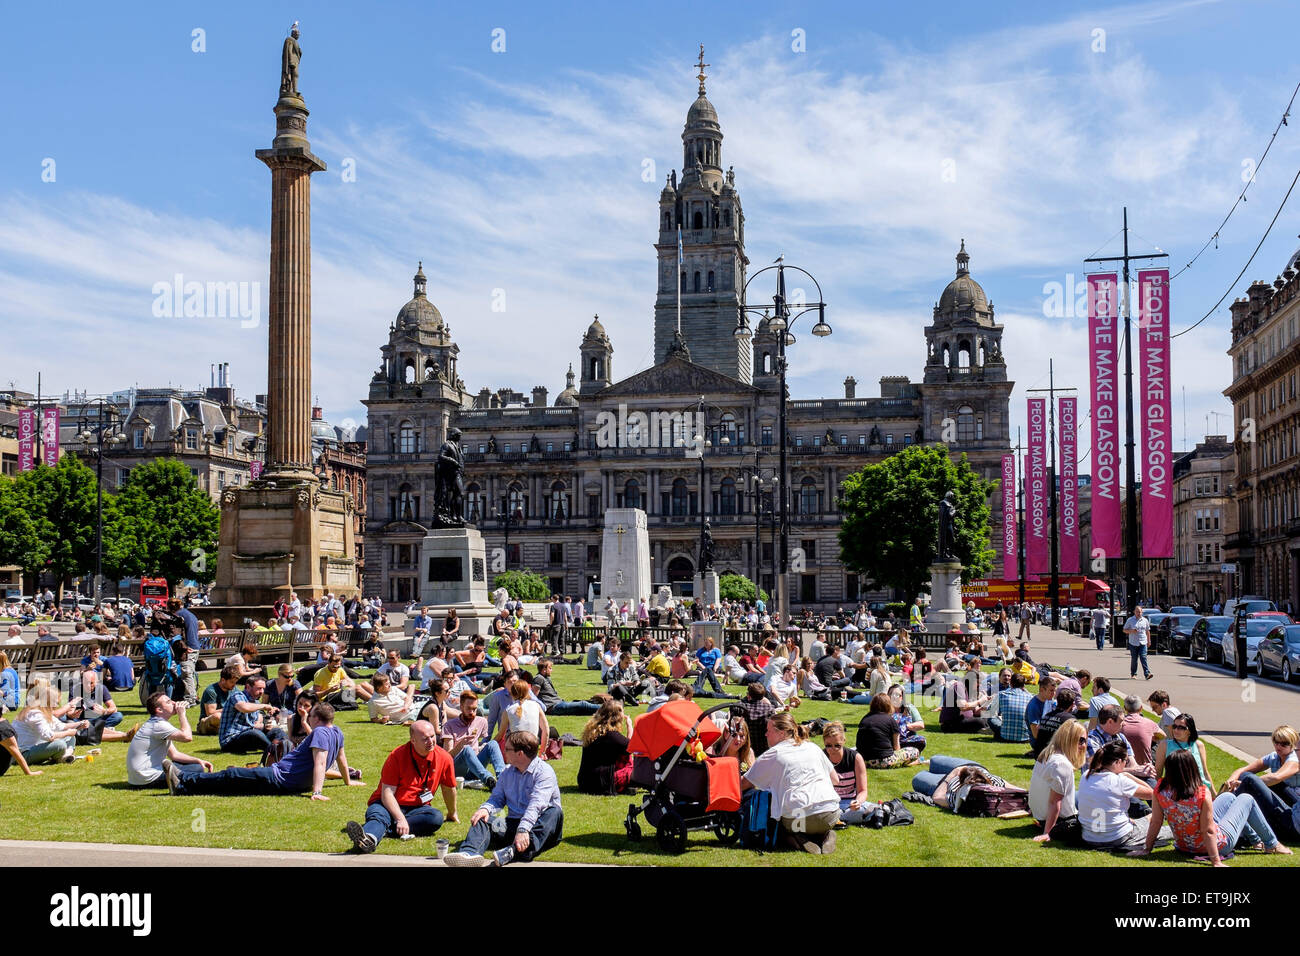 glasgow scotland uk 12th june 2015 at lunch time many people stock photo royalty free. Black Bedroom Furniture Sets. Home Design Ideas